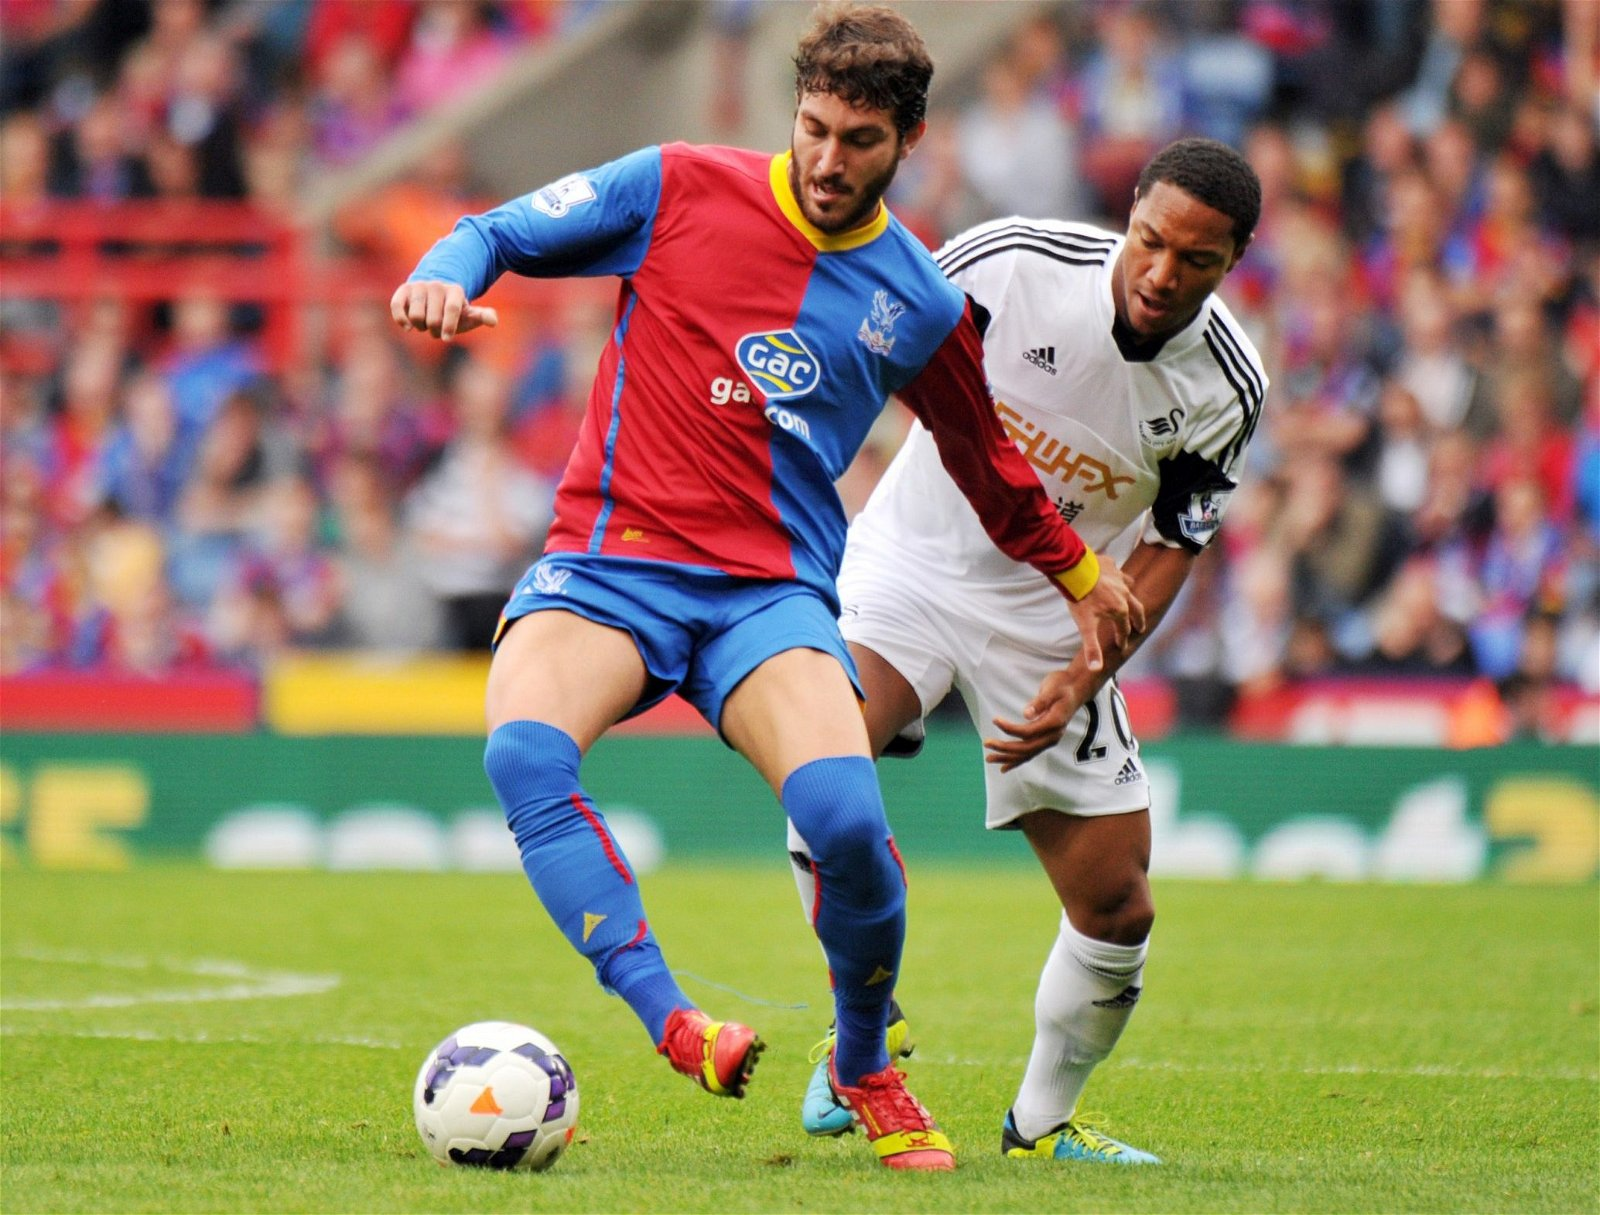 """jose campana in action for palace e1604495036722 - Next Saiz: Orta made an unforgivable Leeds mistake not signing £27m """"immense talent"""" - opinion"""